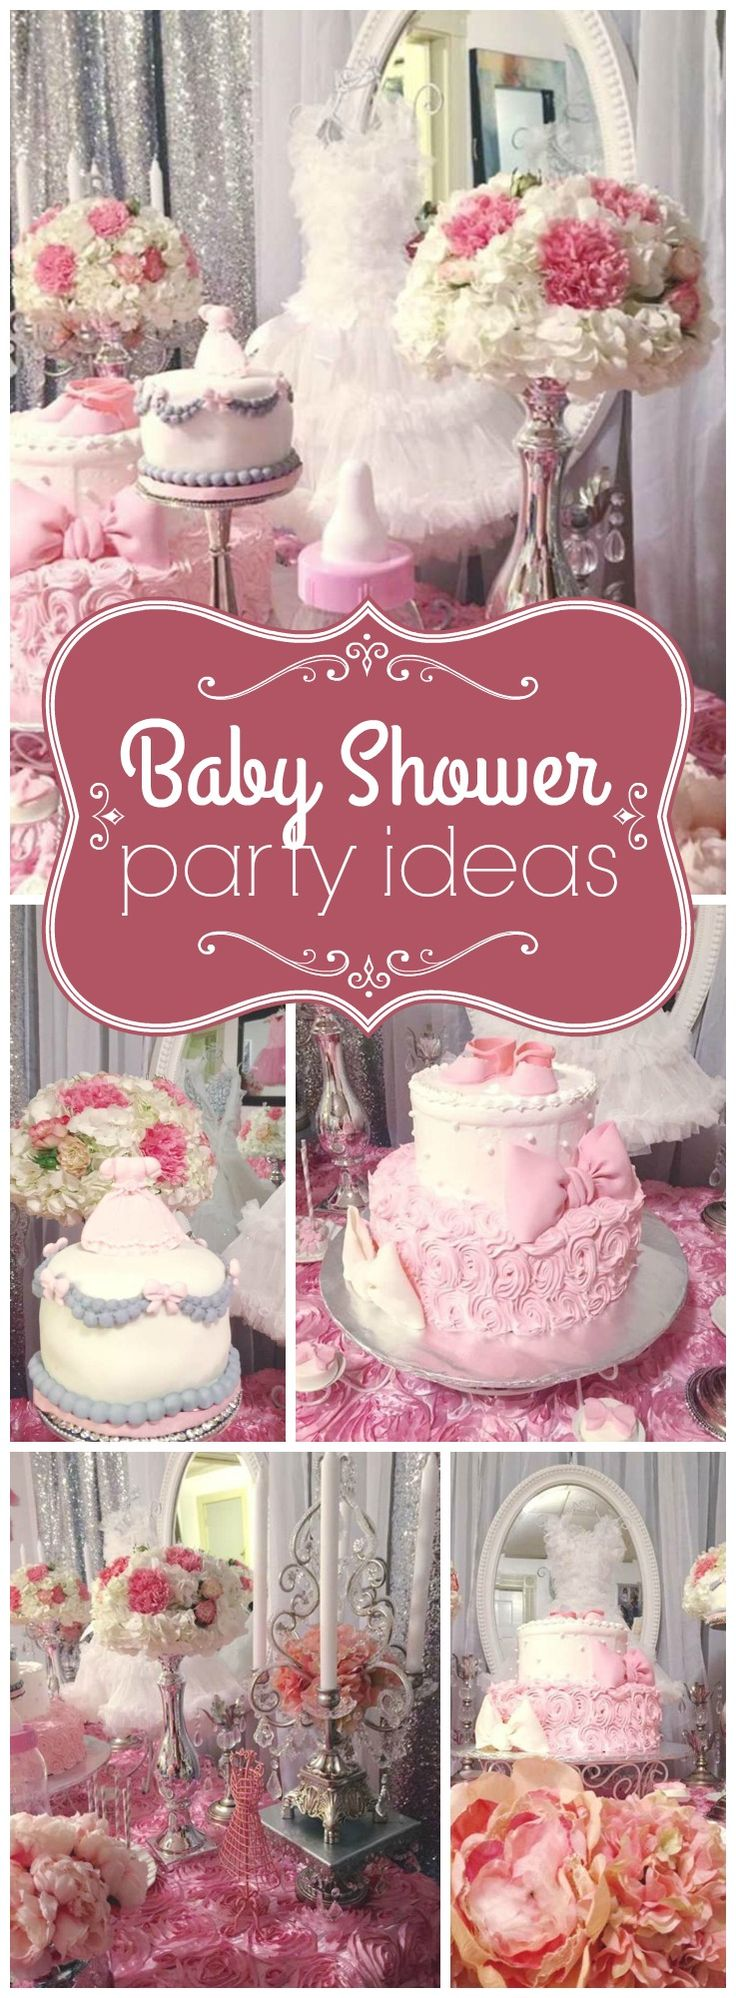 188 best Baby Wreaths, diaper cakes... images on Pinterest | Baby ...